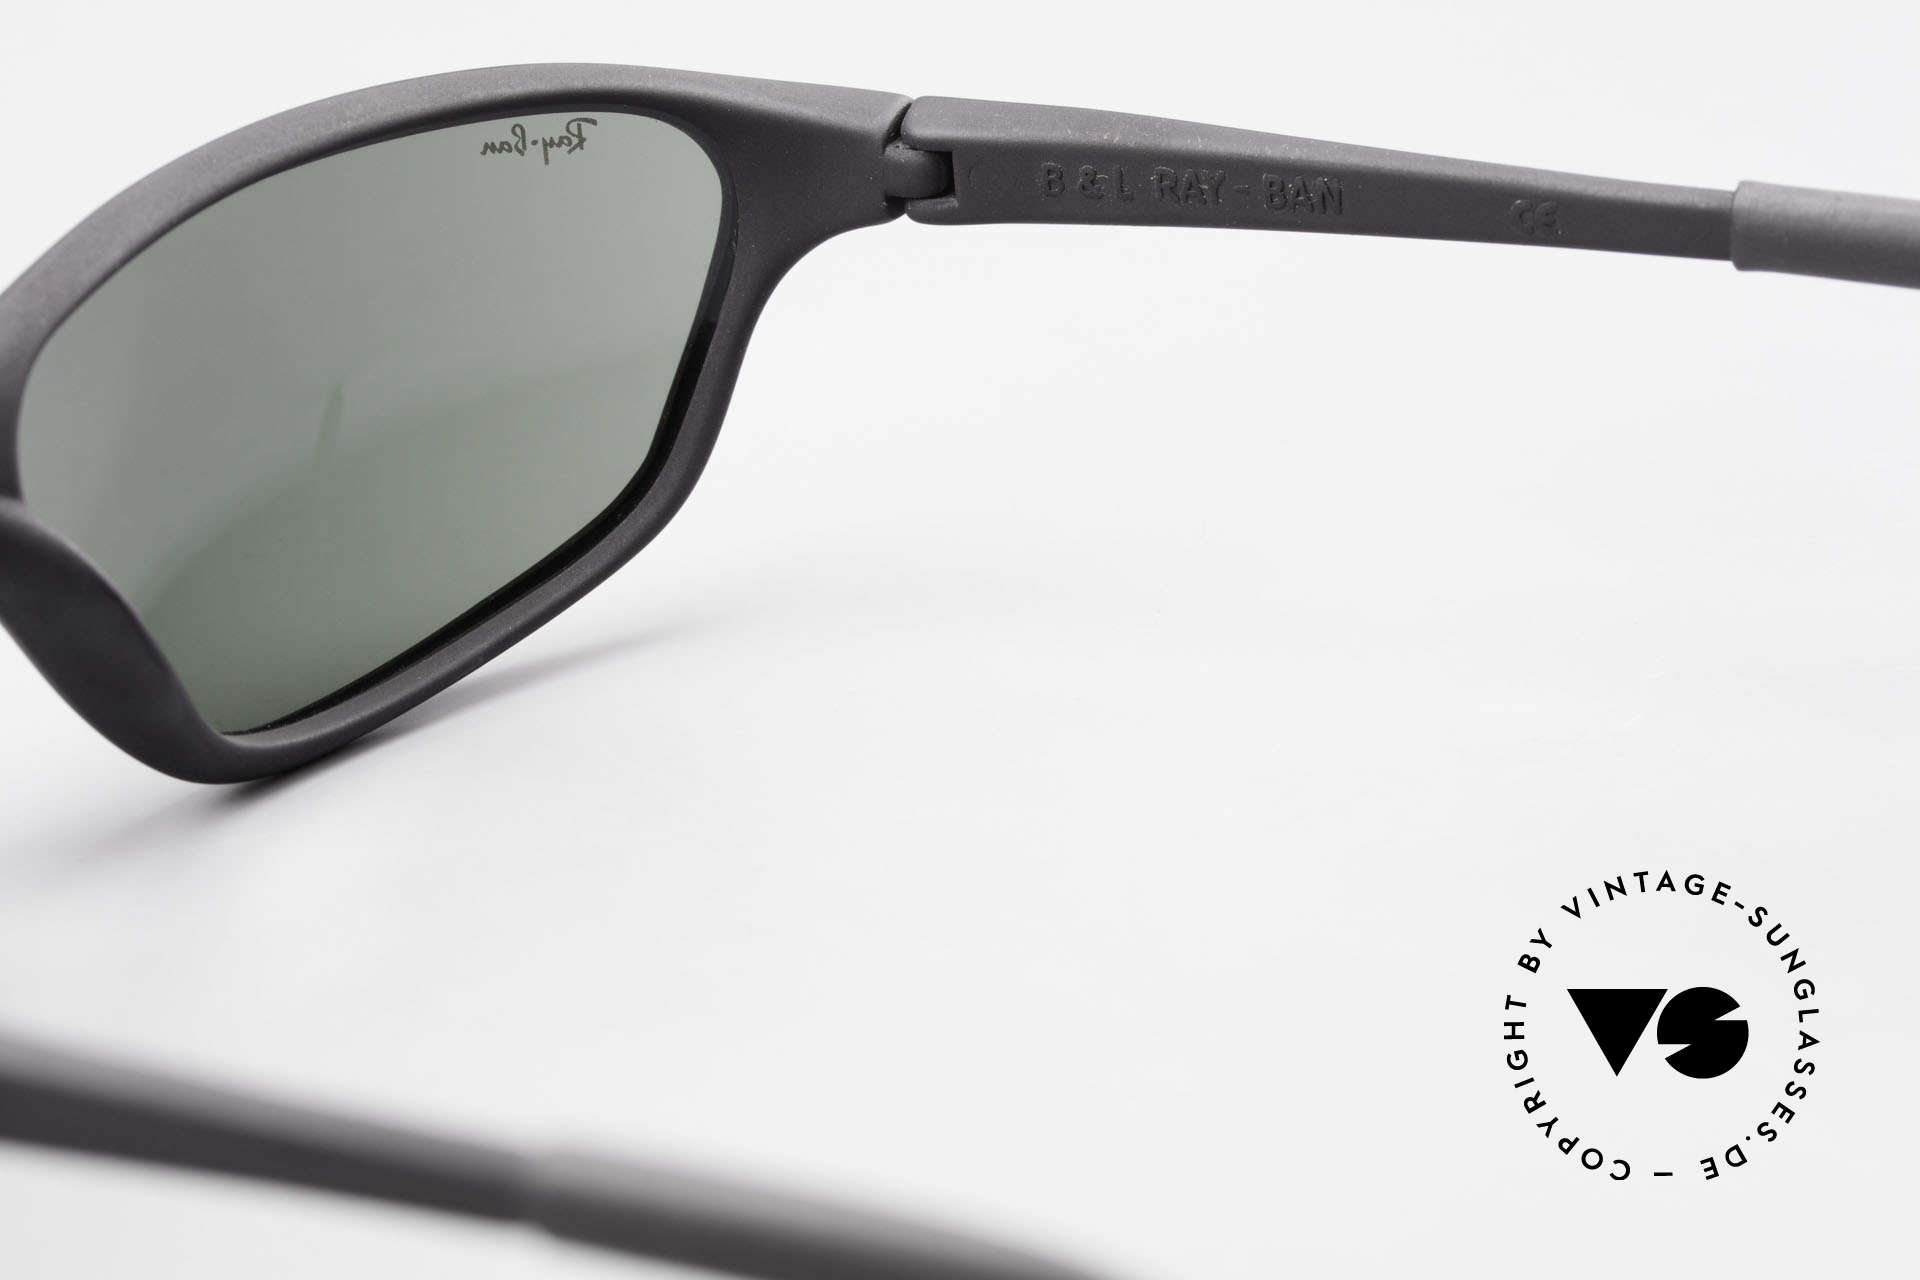 Ray Ban Predator 10 Sporty USA Ray-Ban B&L Shades, NO RETRO SHADES, but an old USA ORIGINAL!, Made for Men